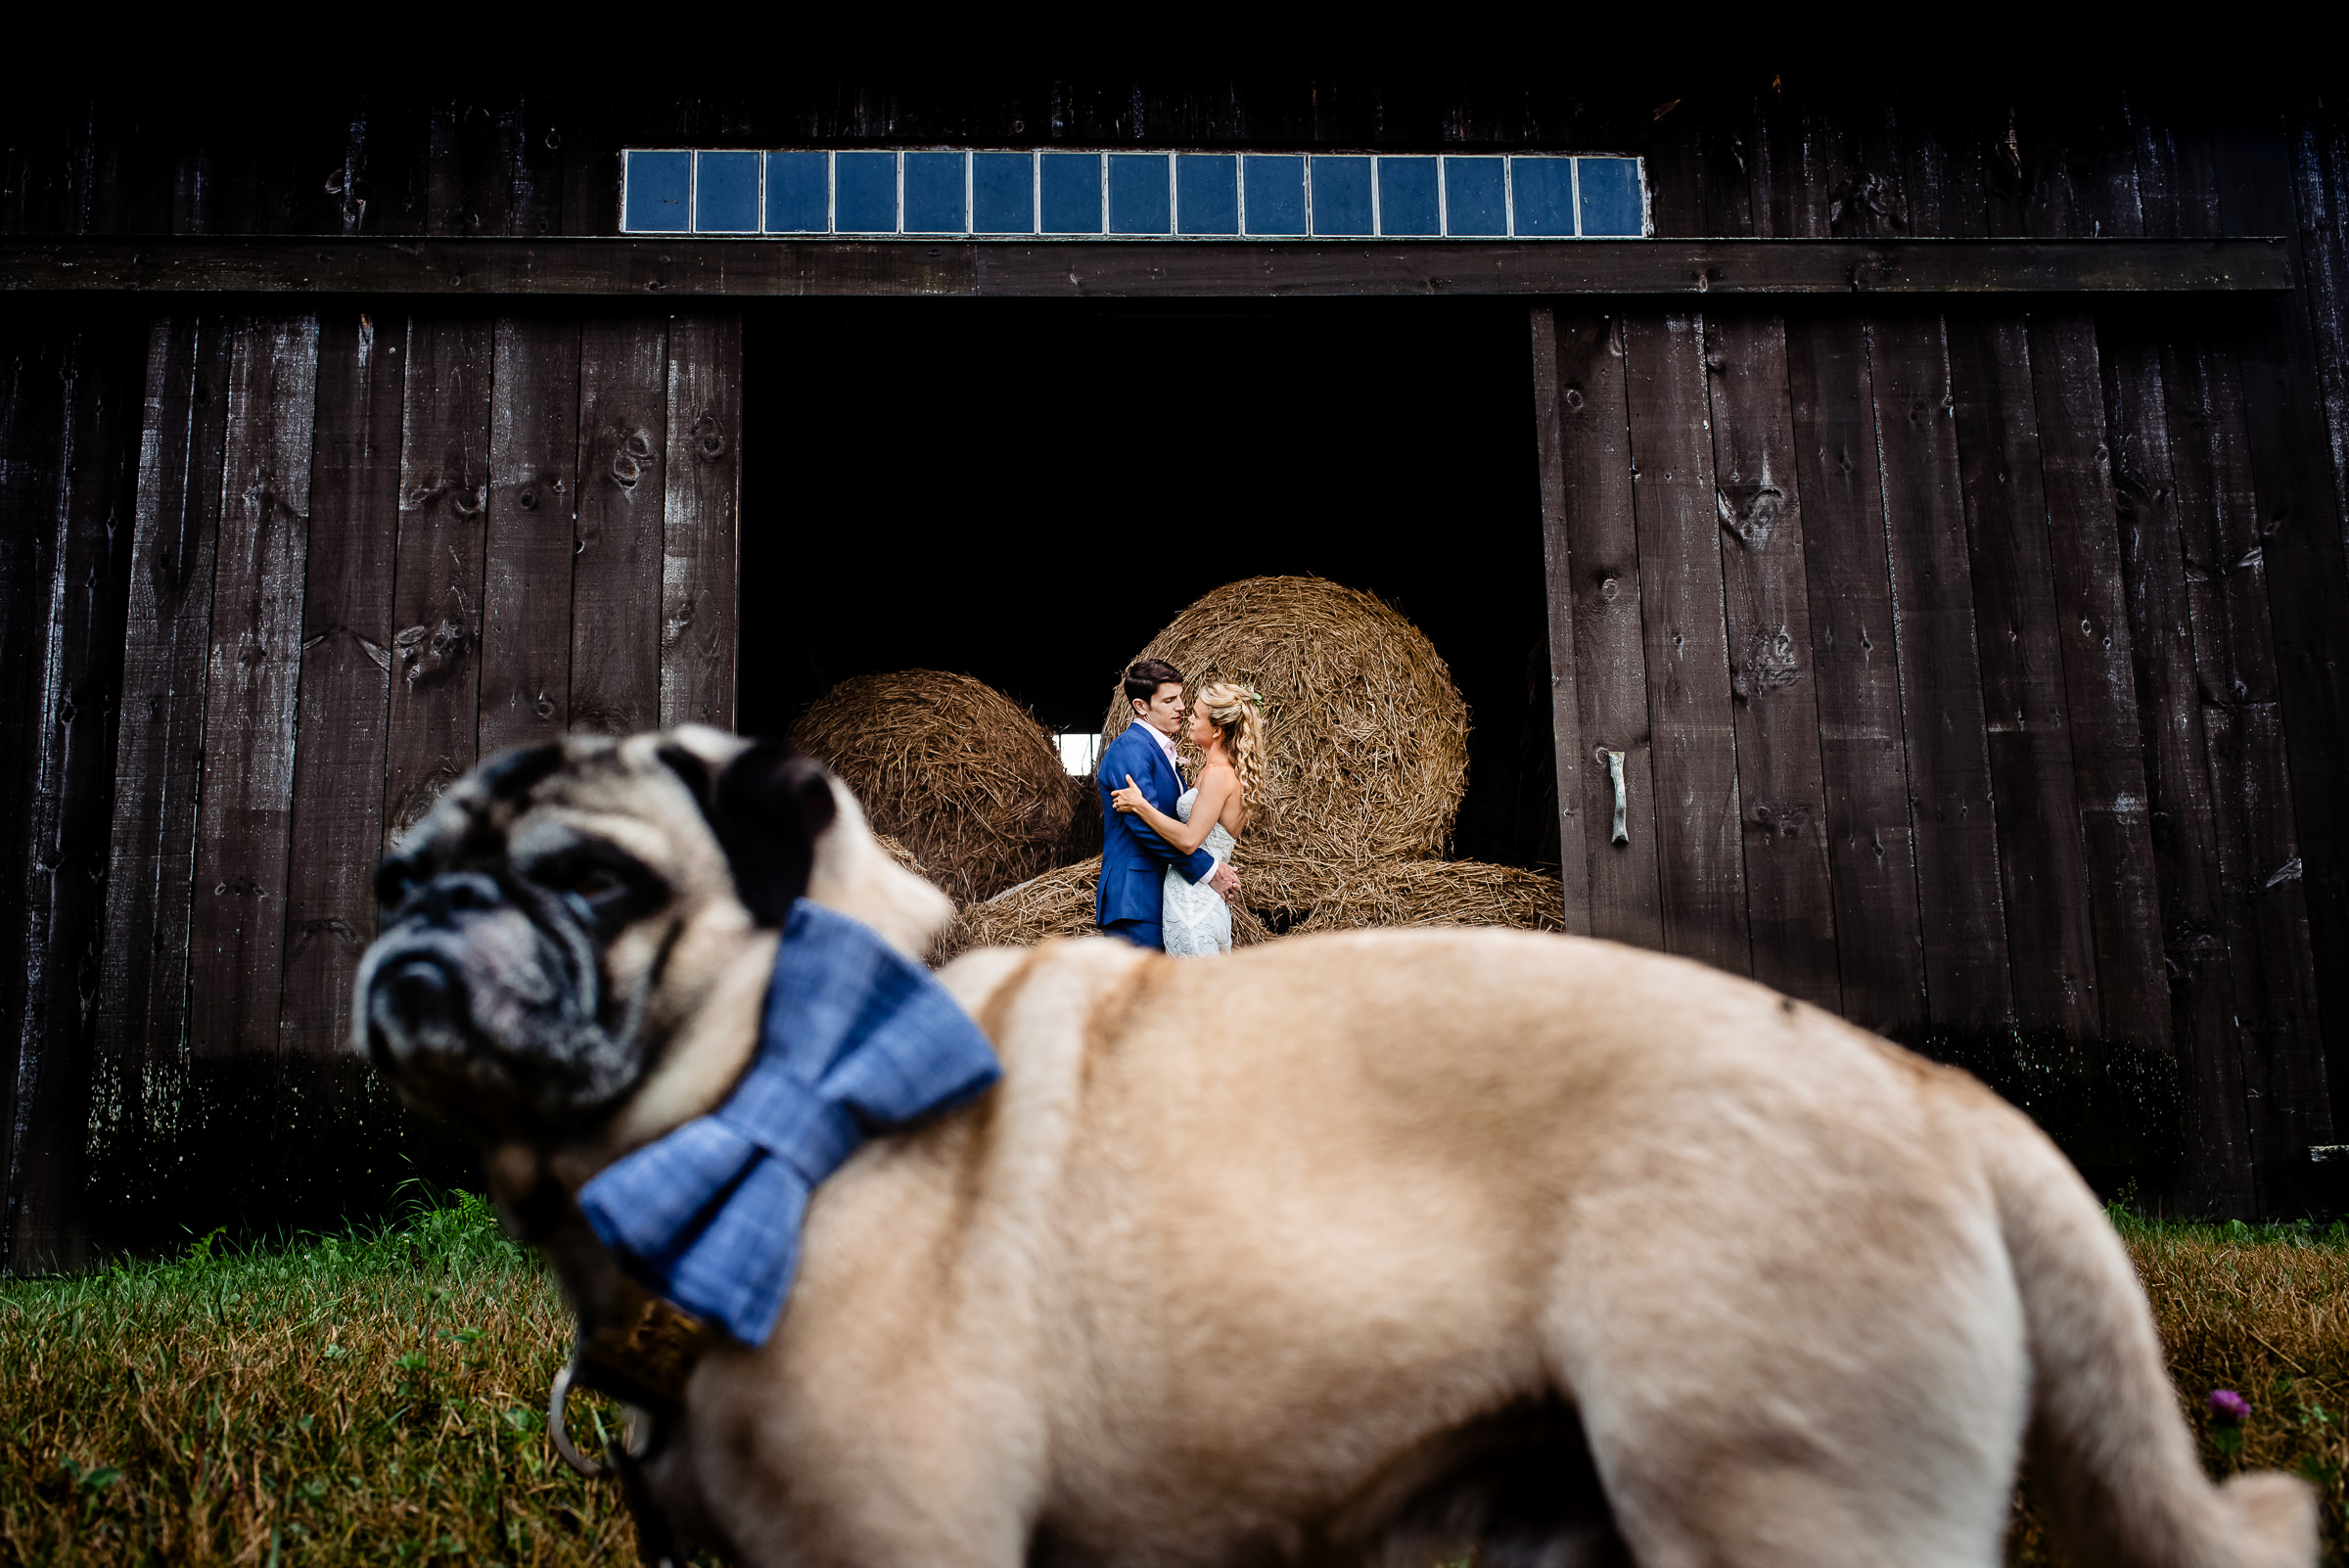 bride-and-groom-and-their-dog-too-portrait-by-the-barn-photo-by-hannah-photography